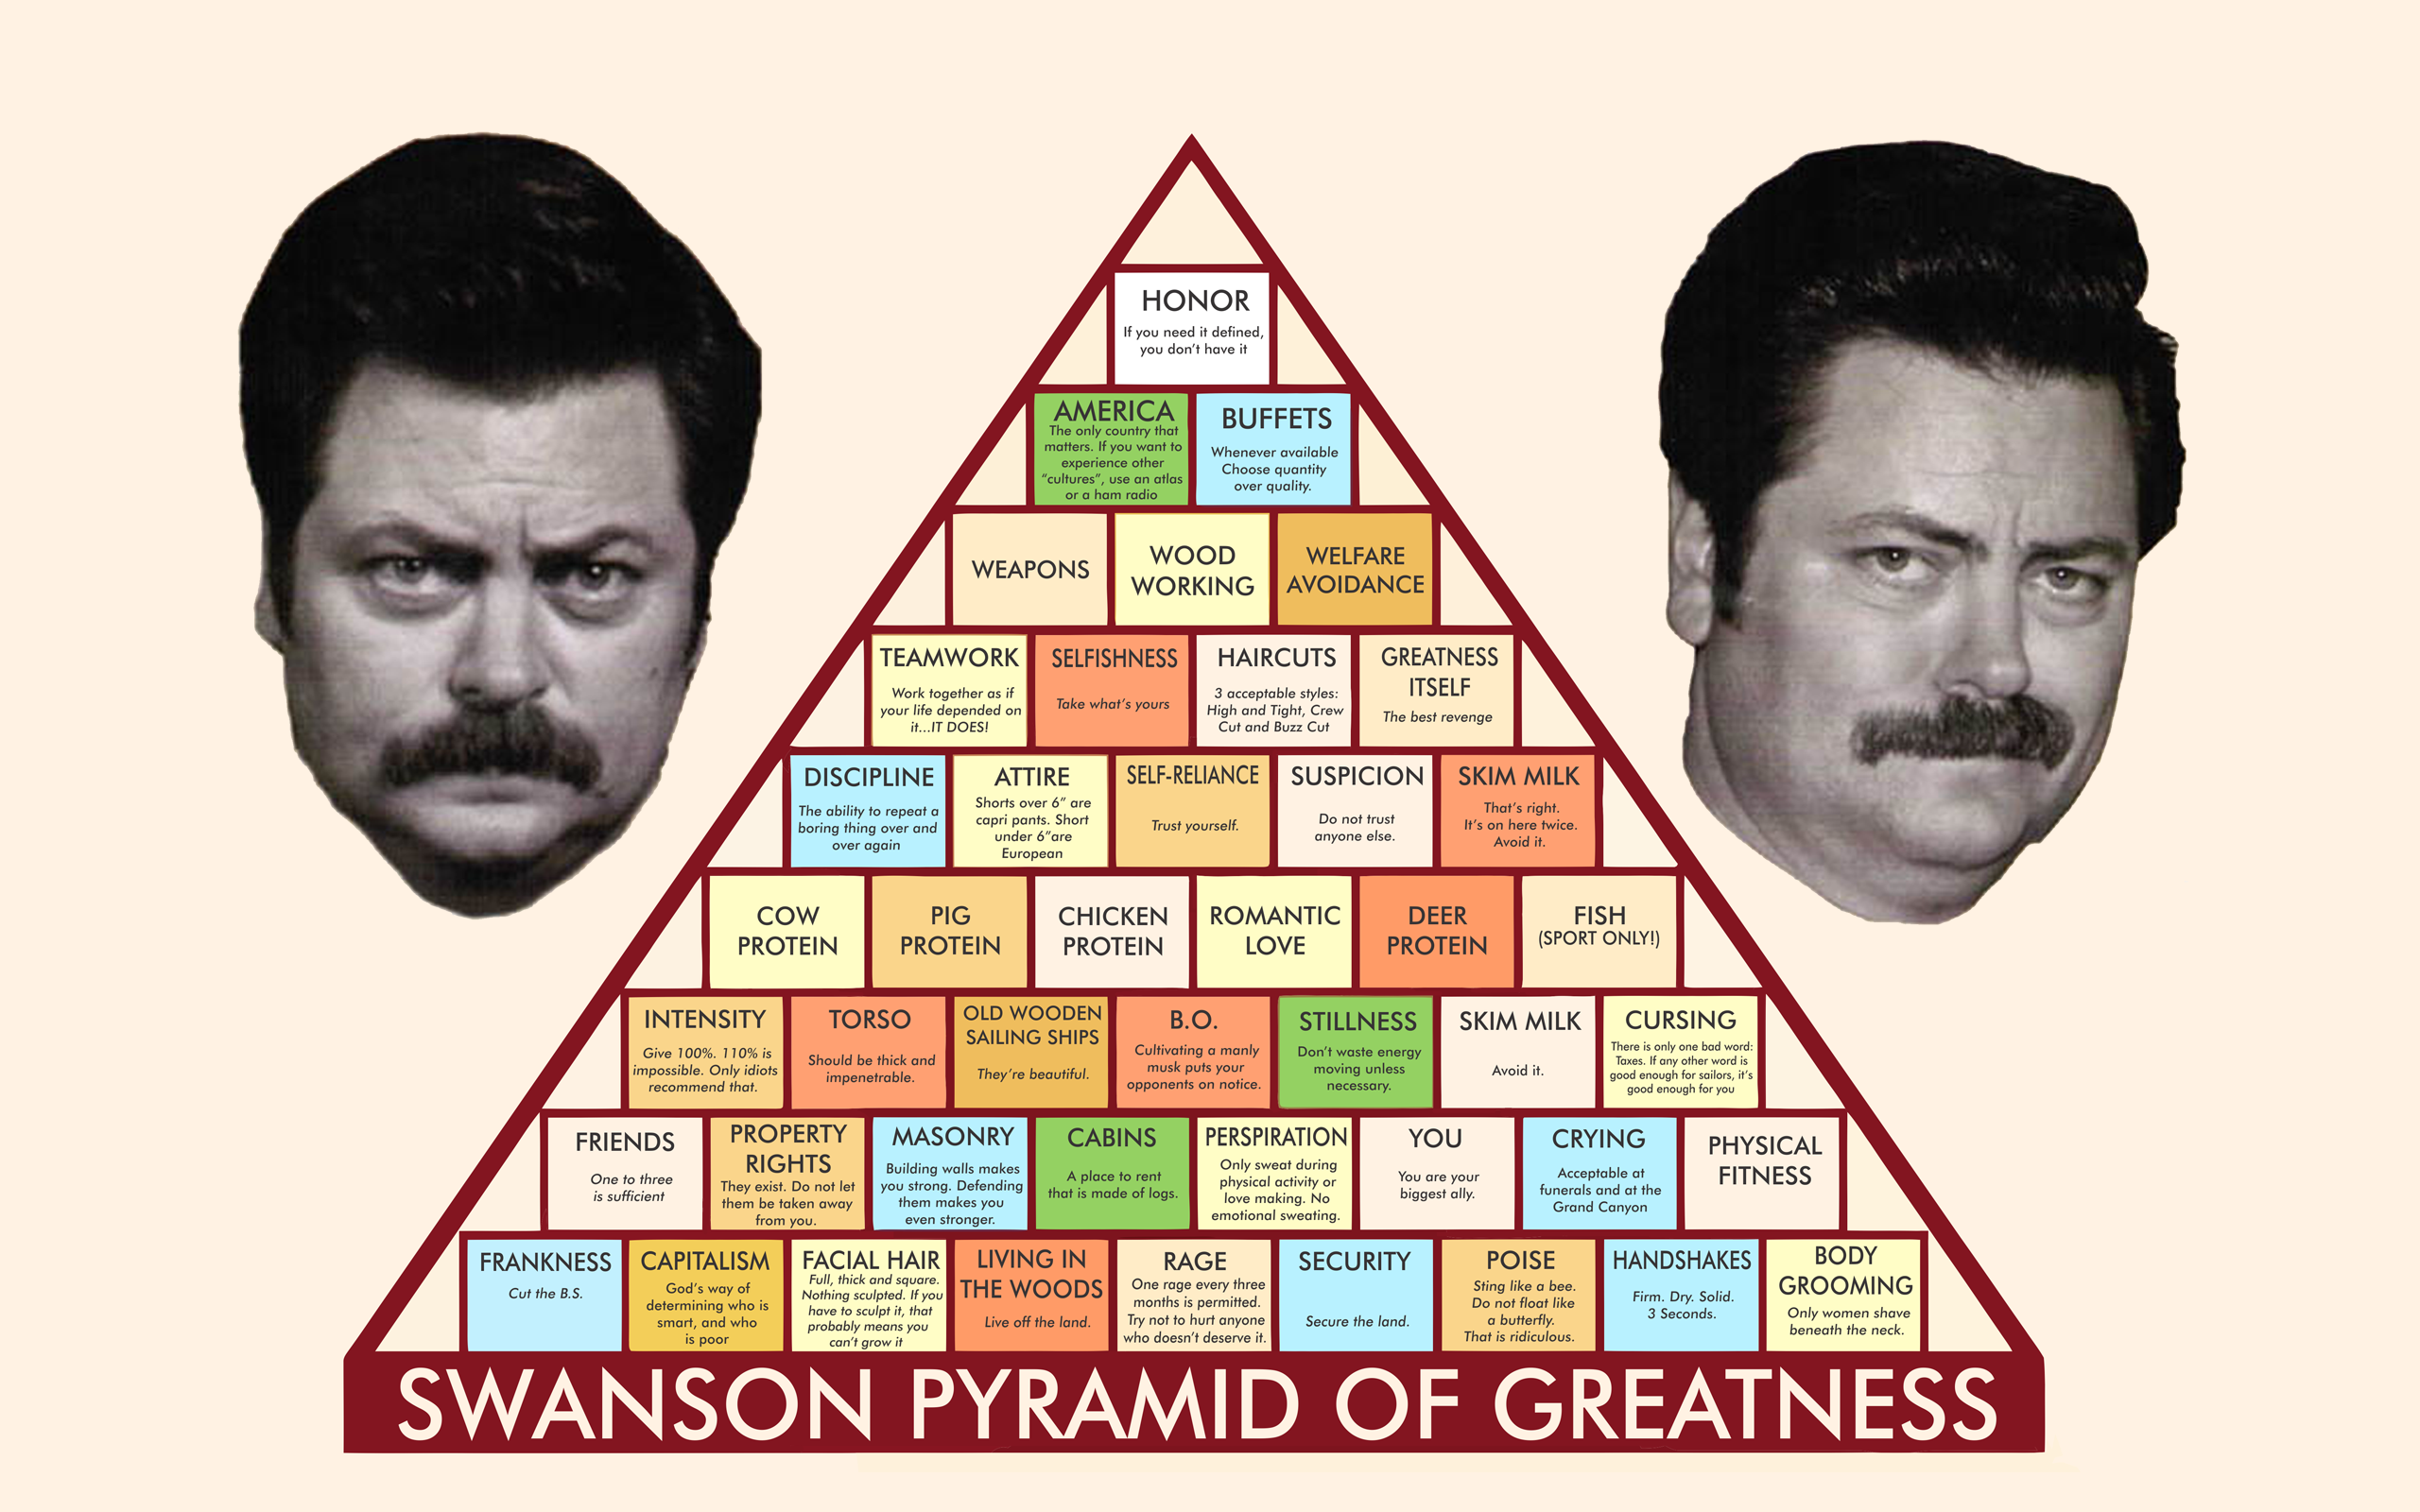 http://www.thereformedbroker.com/wp-content/uploads/2012/05/swanson-pyramid.png